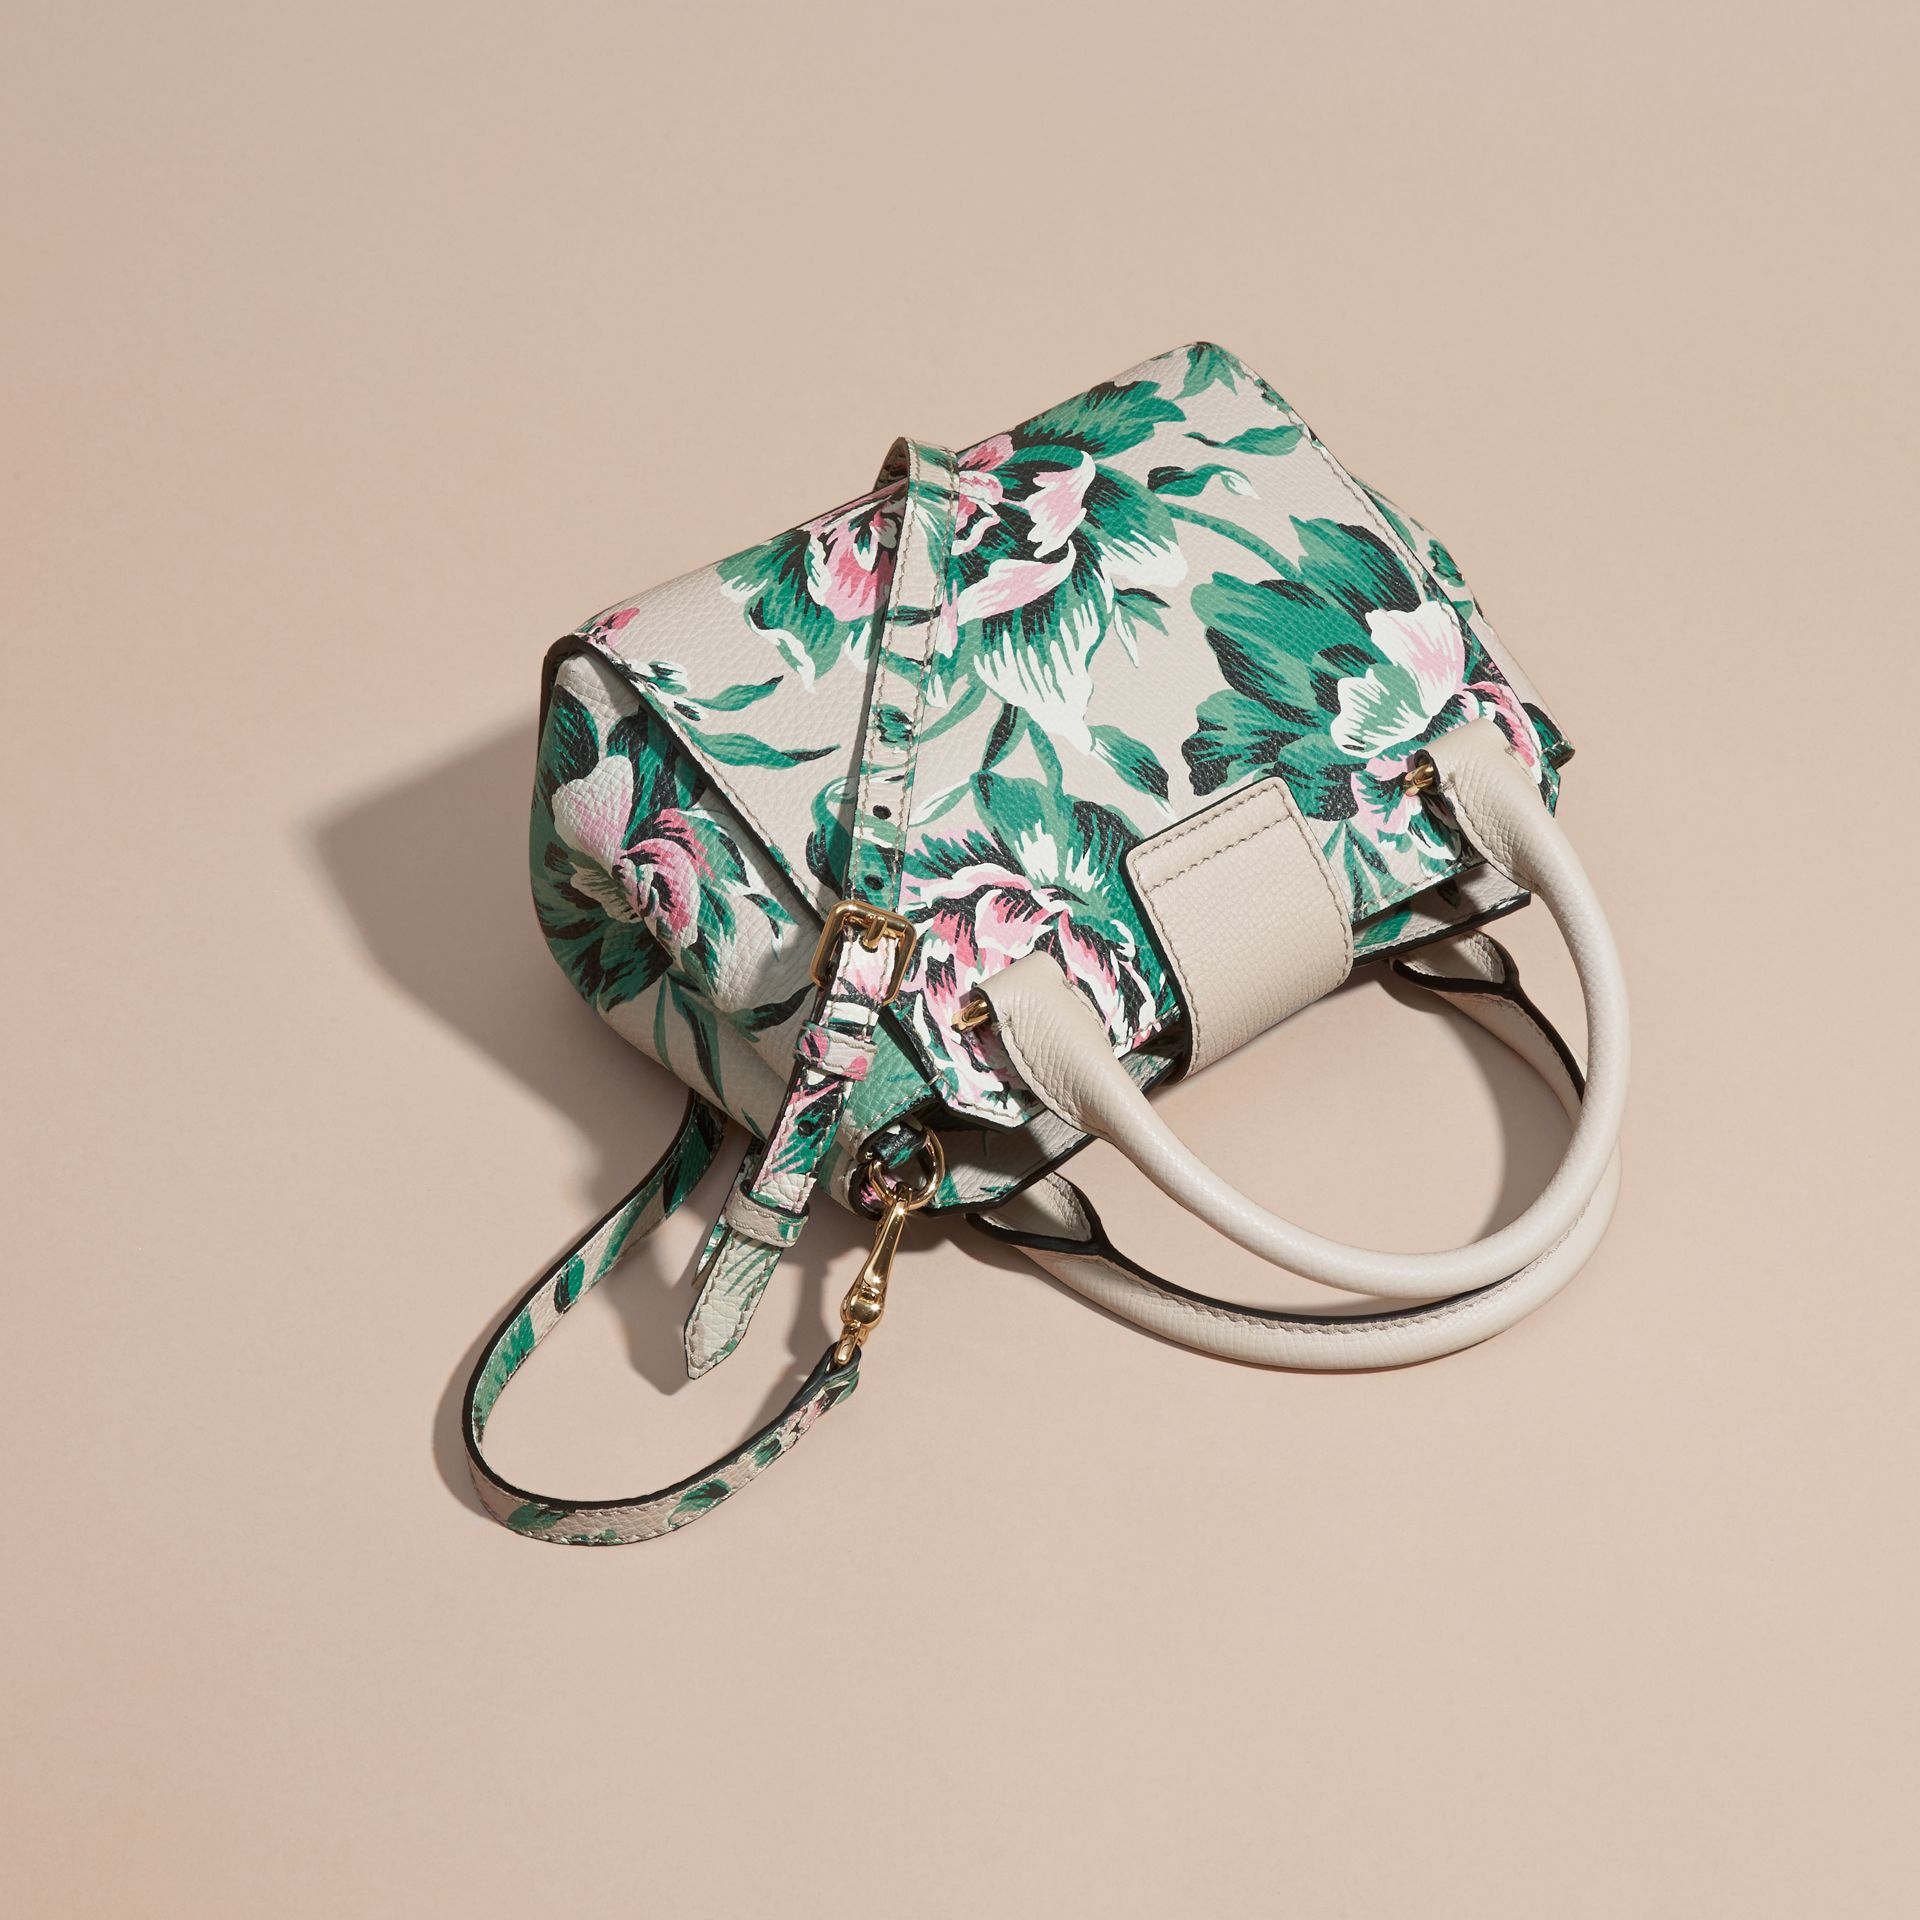 Natural/emerald green The Small Buckle Tote in Peony Rose Print Leather Natural/emerald Green - gallery image 5